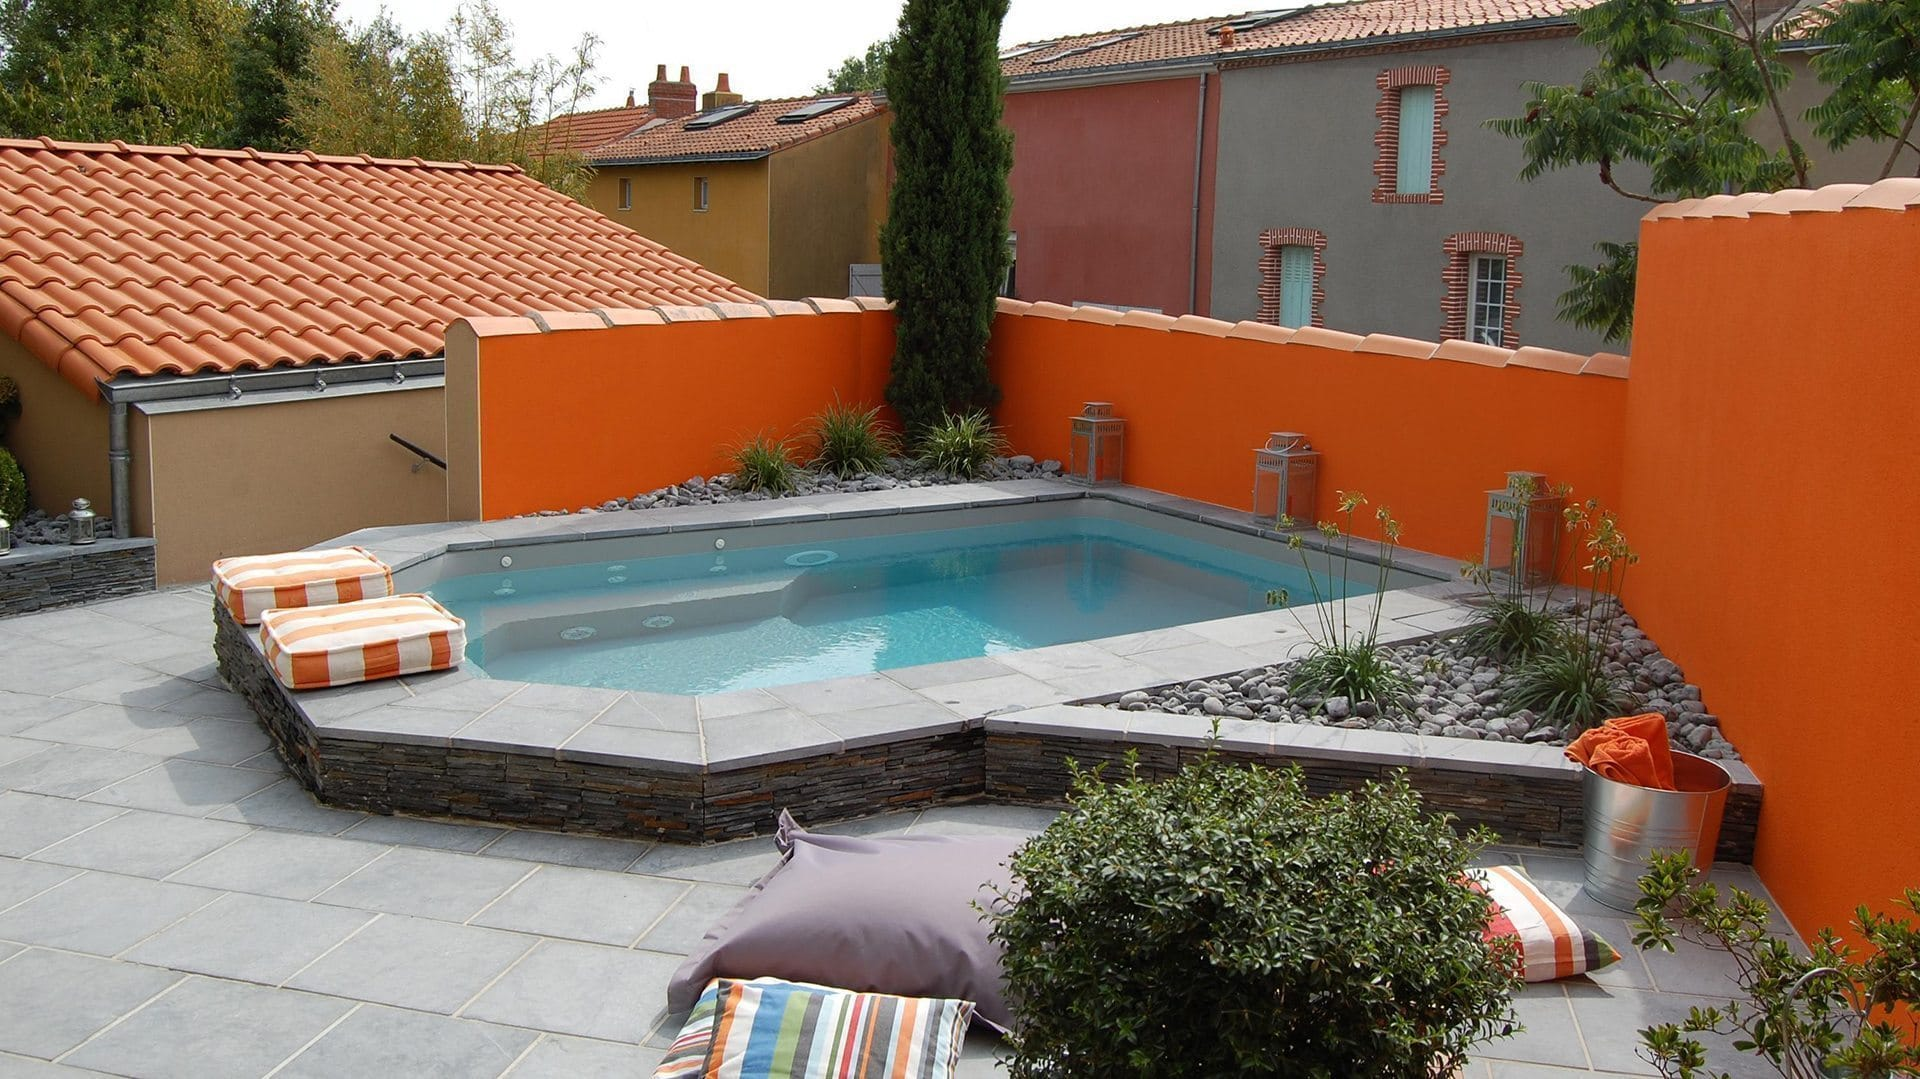 Prix Mini Piscine Mini Piscine 10m2 Mini Piscine 10m2 Beautiful Mini